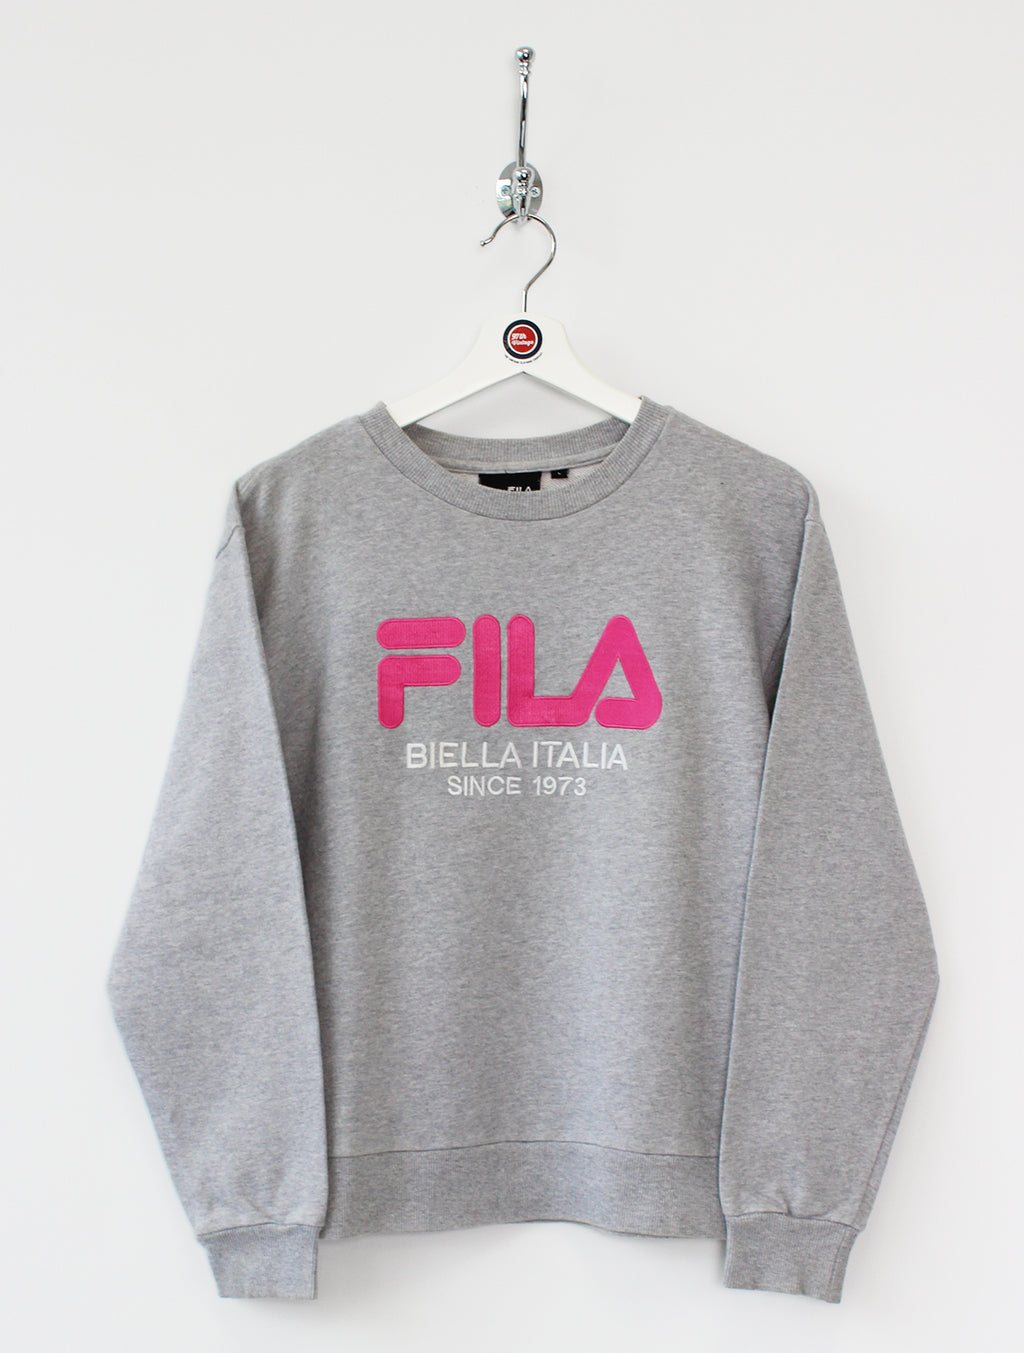 Women's Fila Sweatshirt (S)